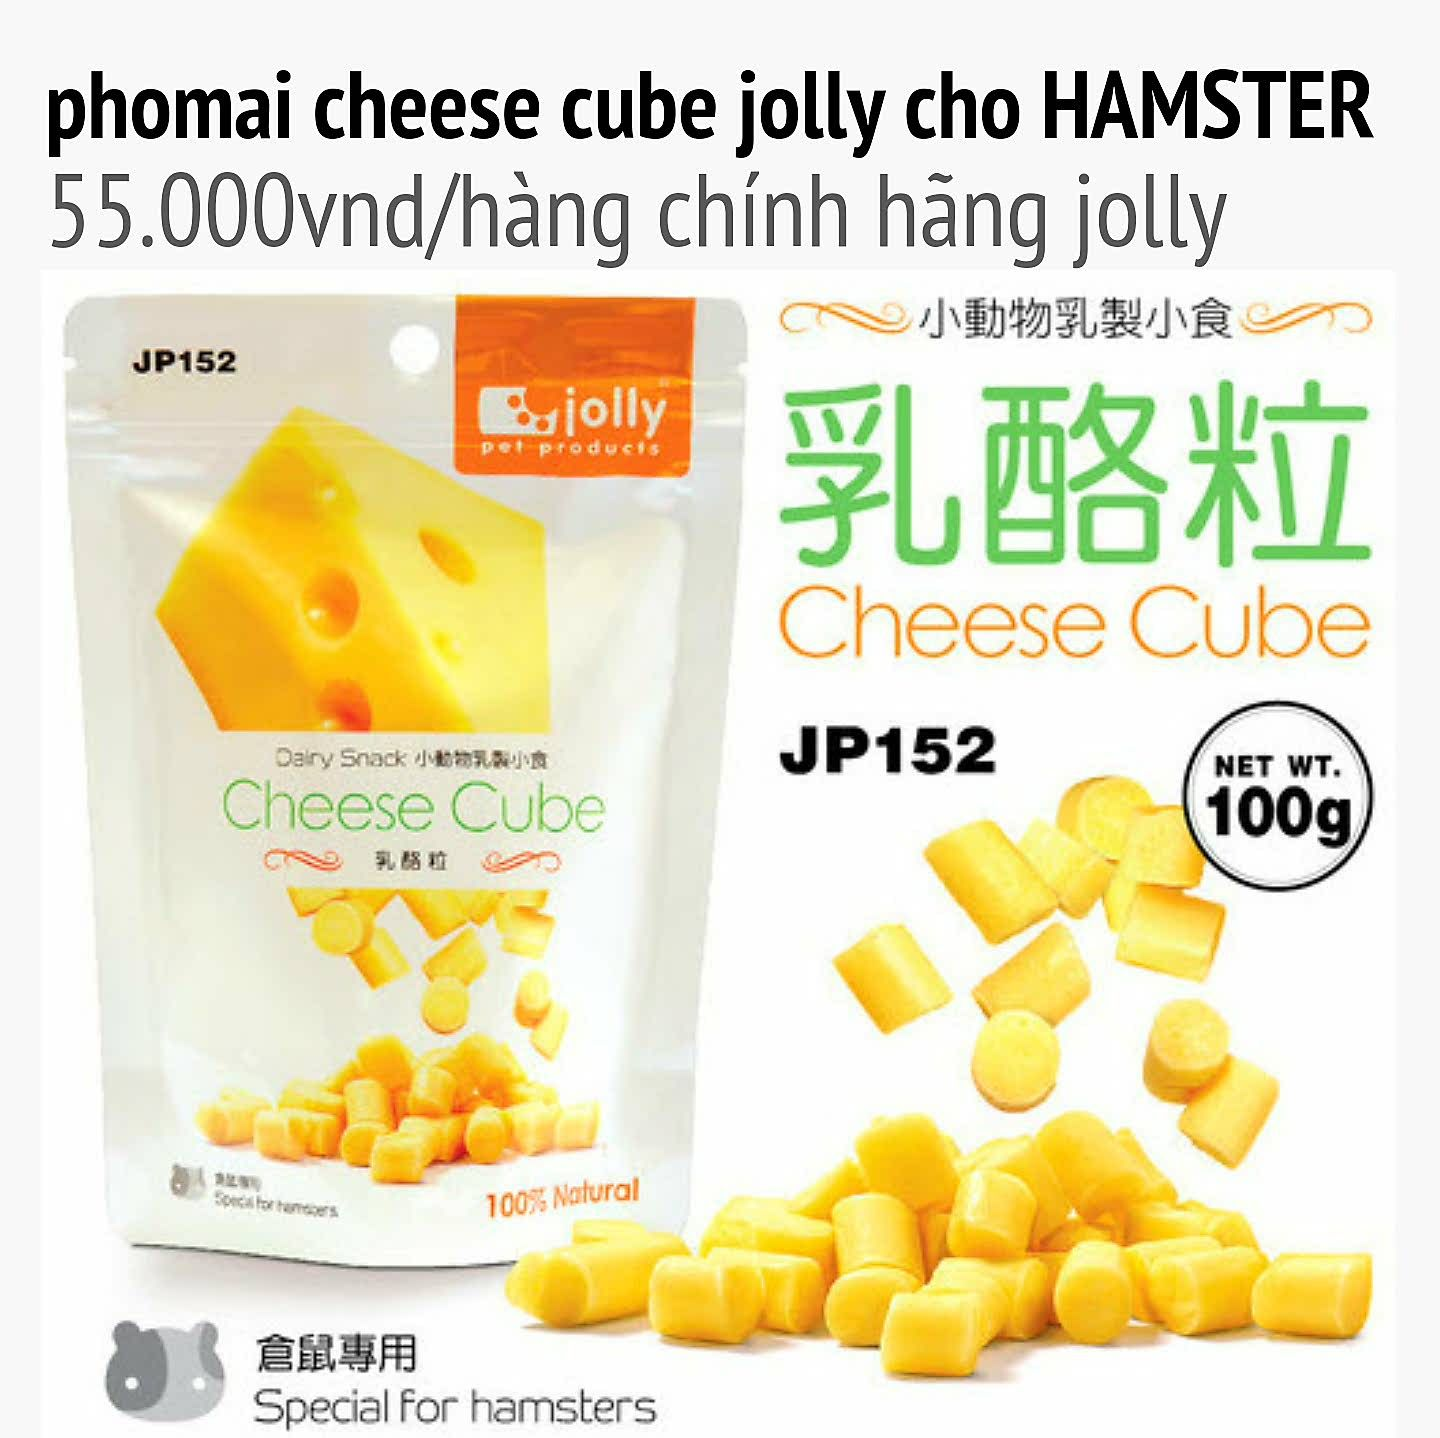 cheese cube cho fatailed,hamster,thỏ,bọ